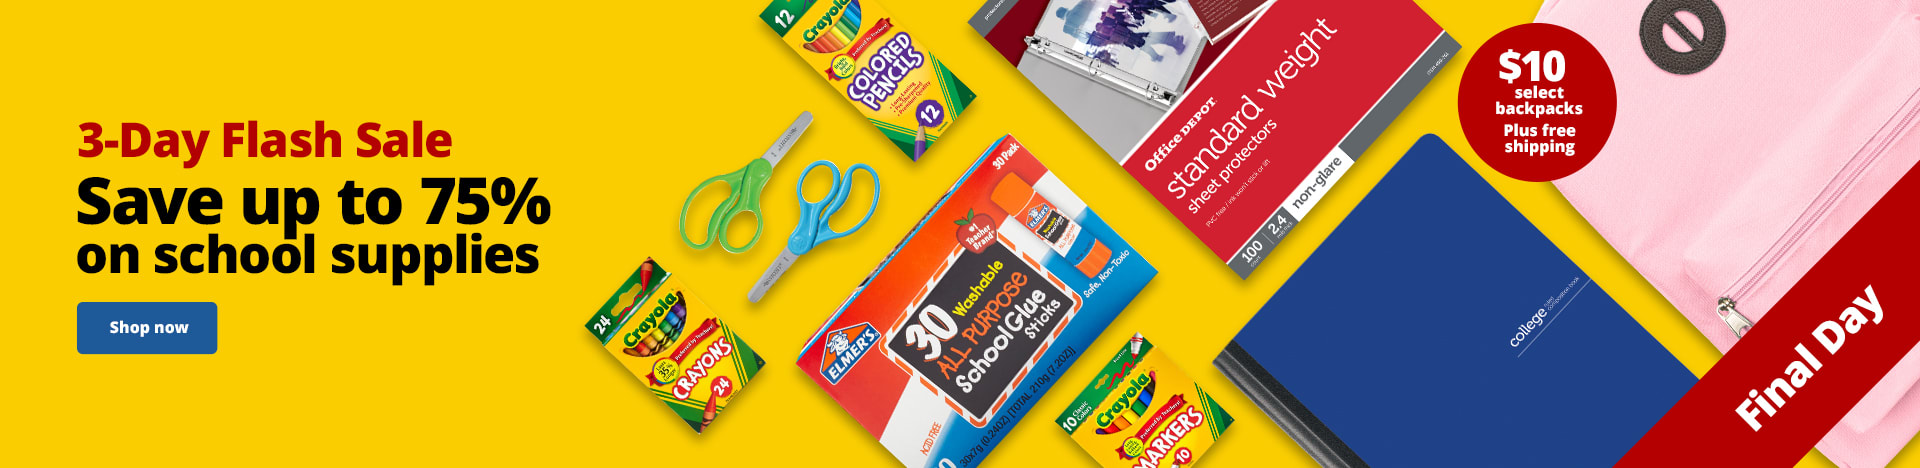 3-Day Flash Sale. Save up to 75% on school supplies